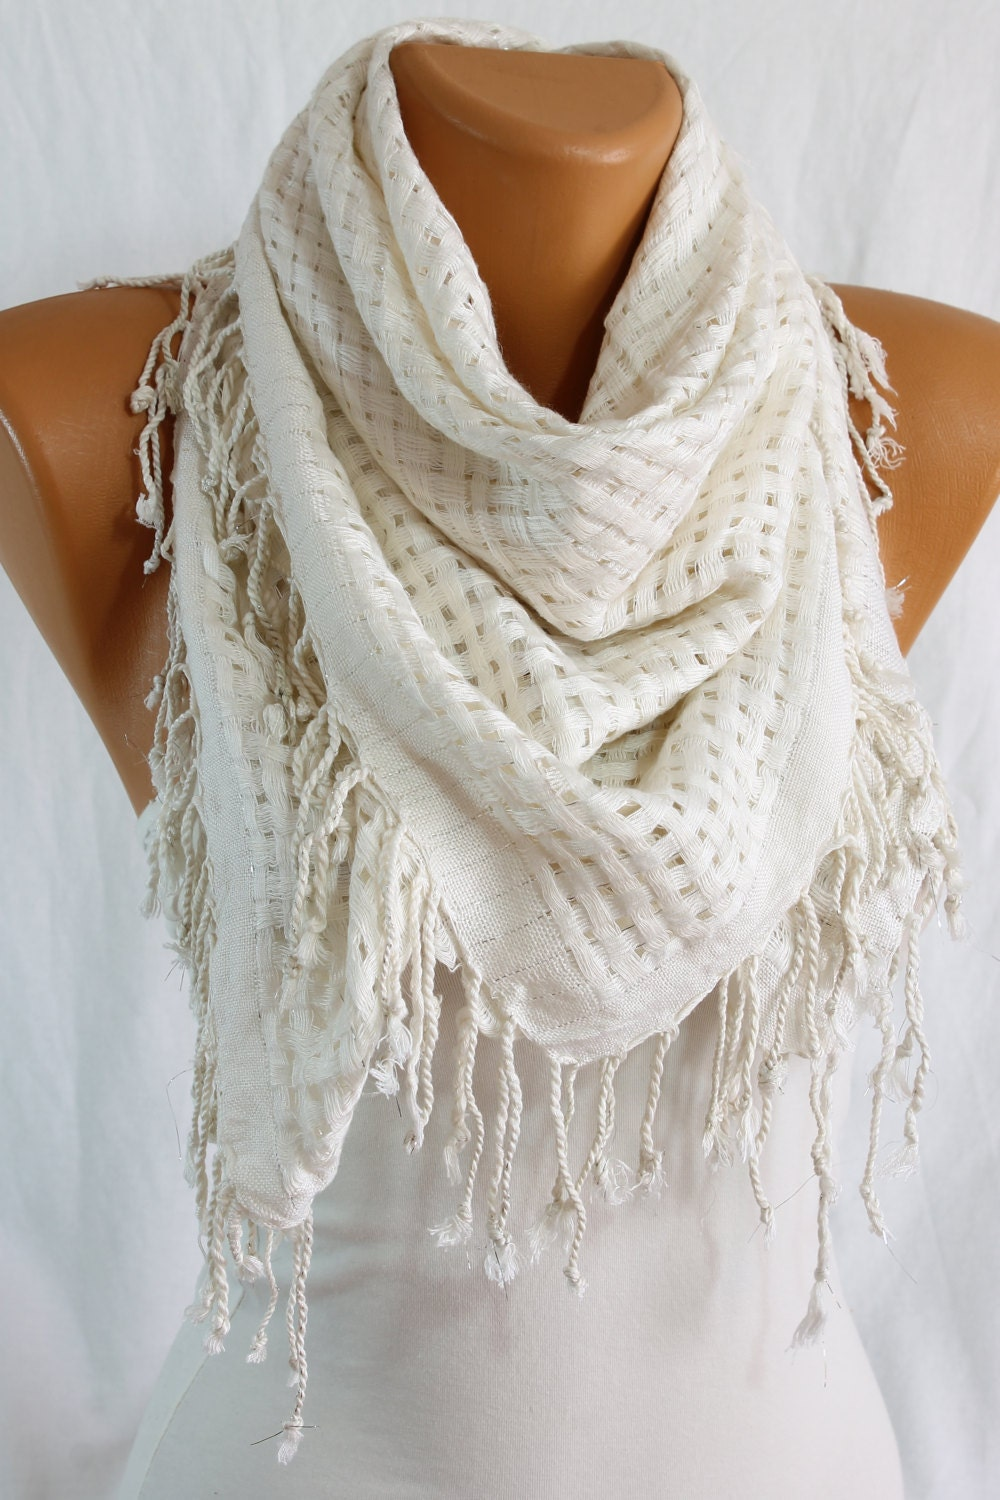 Shop for white scarf online at Target. Free shipping on purchases over $35 and save 5% every day with your Target REDcard.